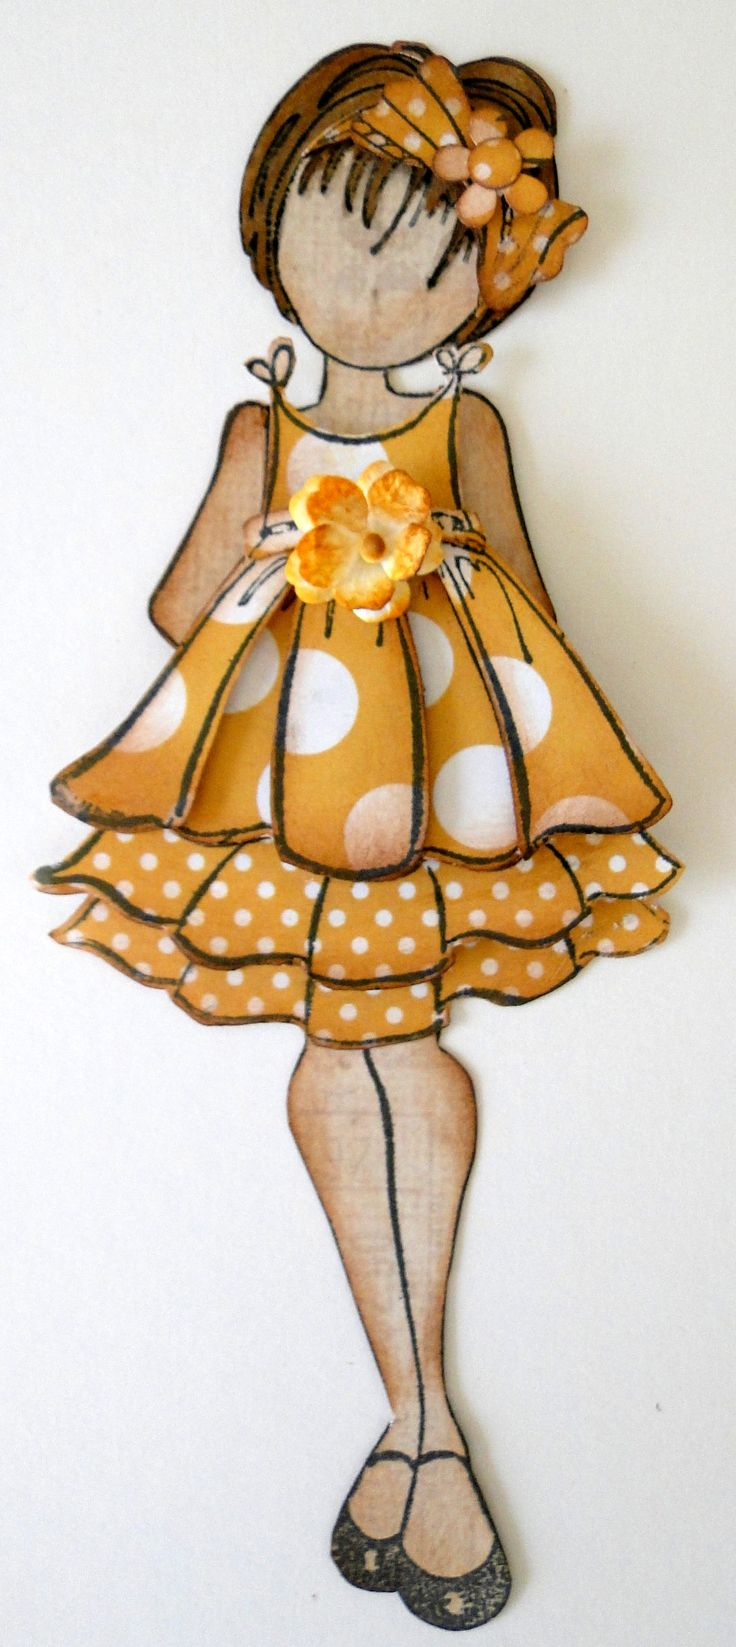 http://www.pinterest.com/cdepol/she-art-julie-nutting-designs/ Prima Pper Doll - Scrapbook.com